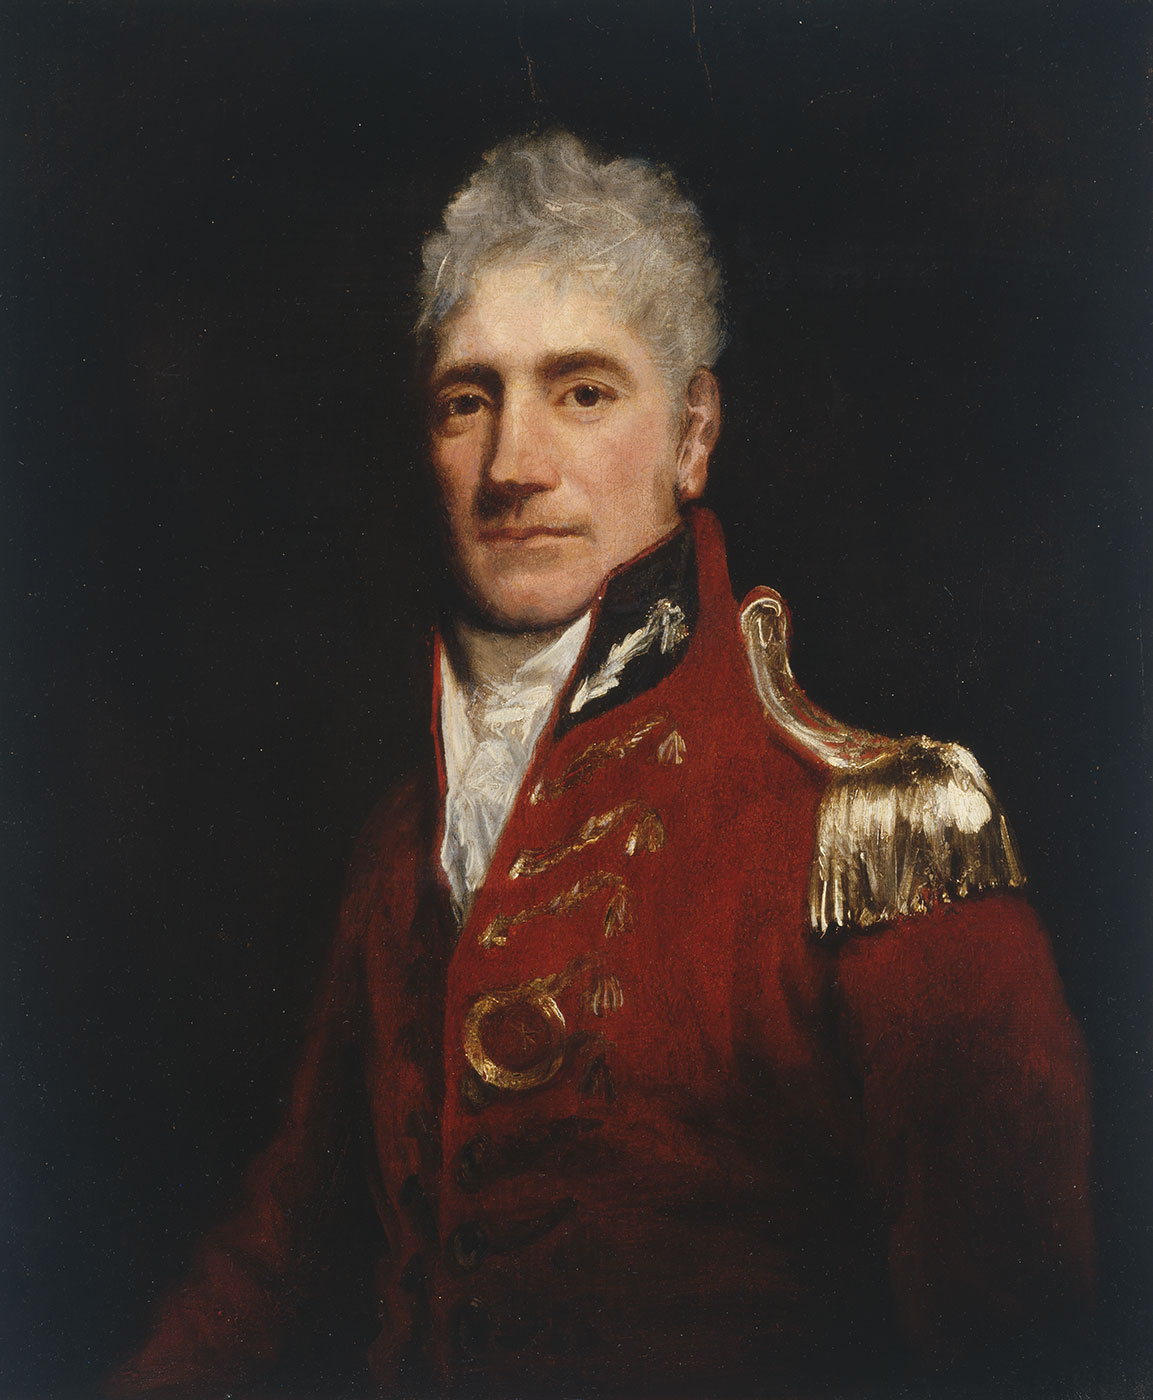 Portrait of Lachlan Macquarie 1805 - click to view larger image